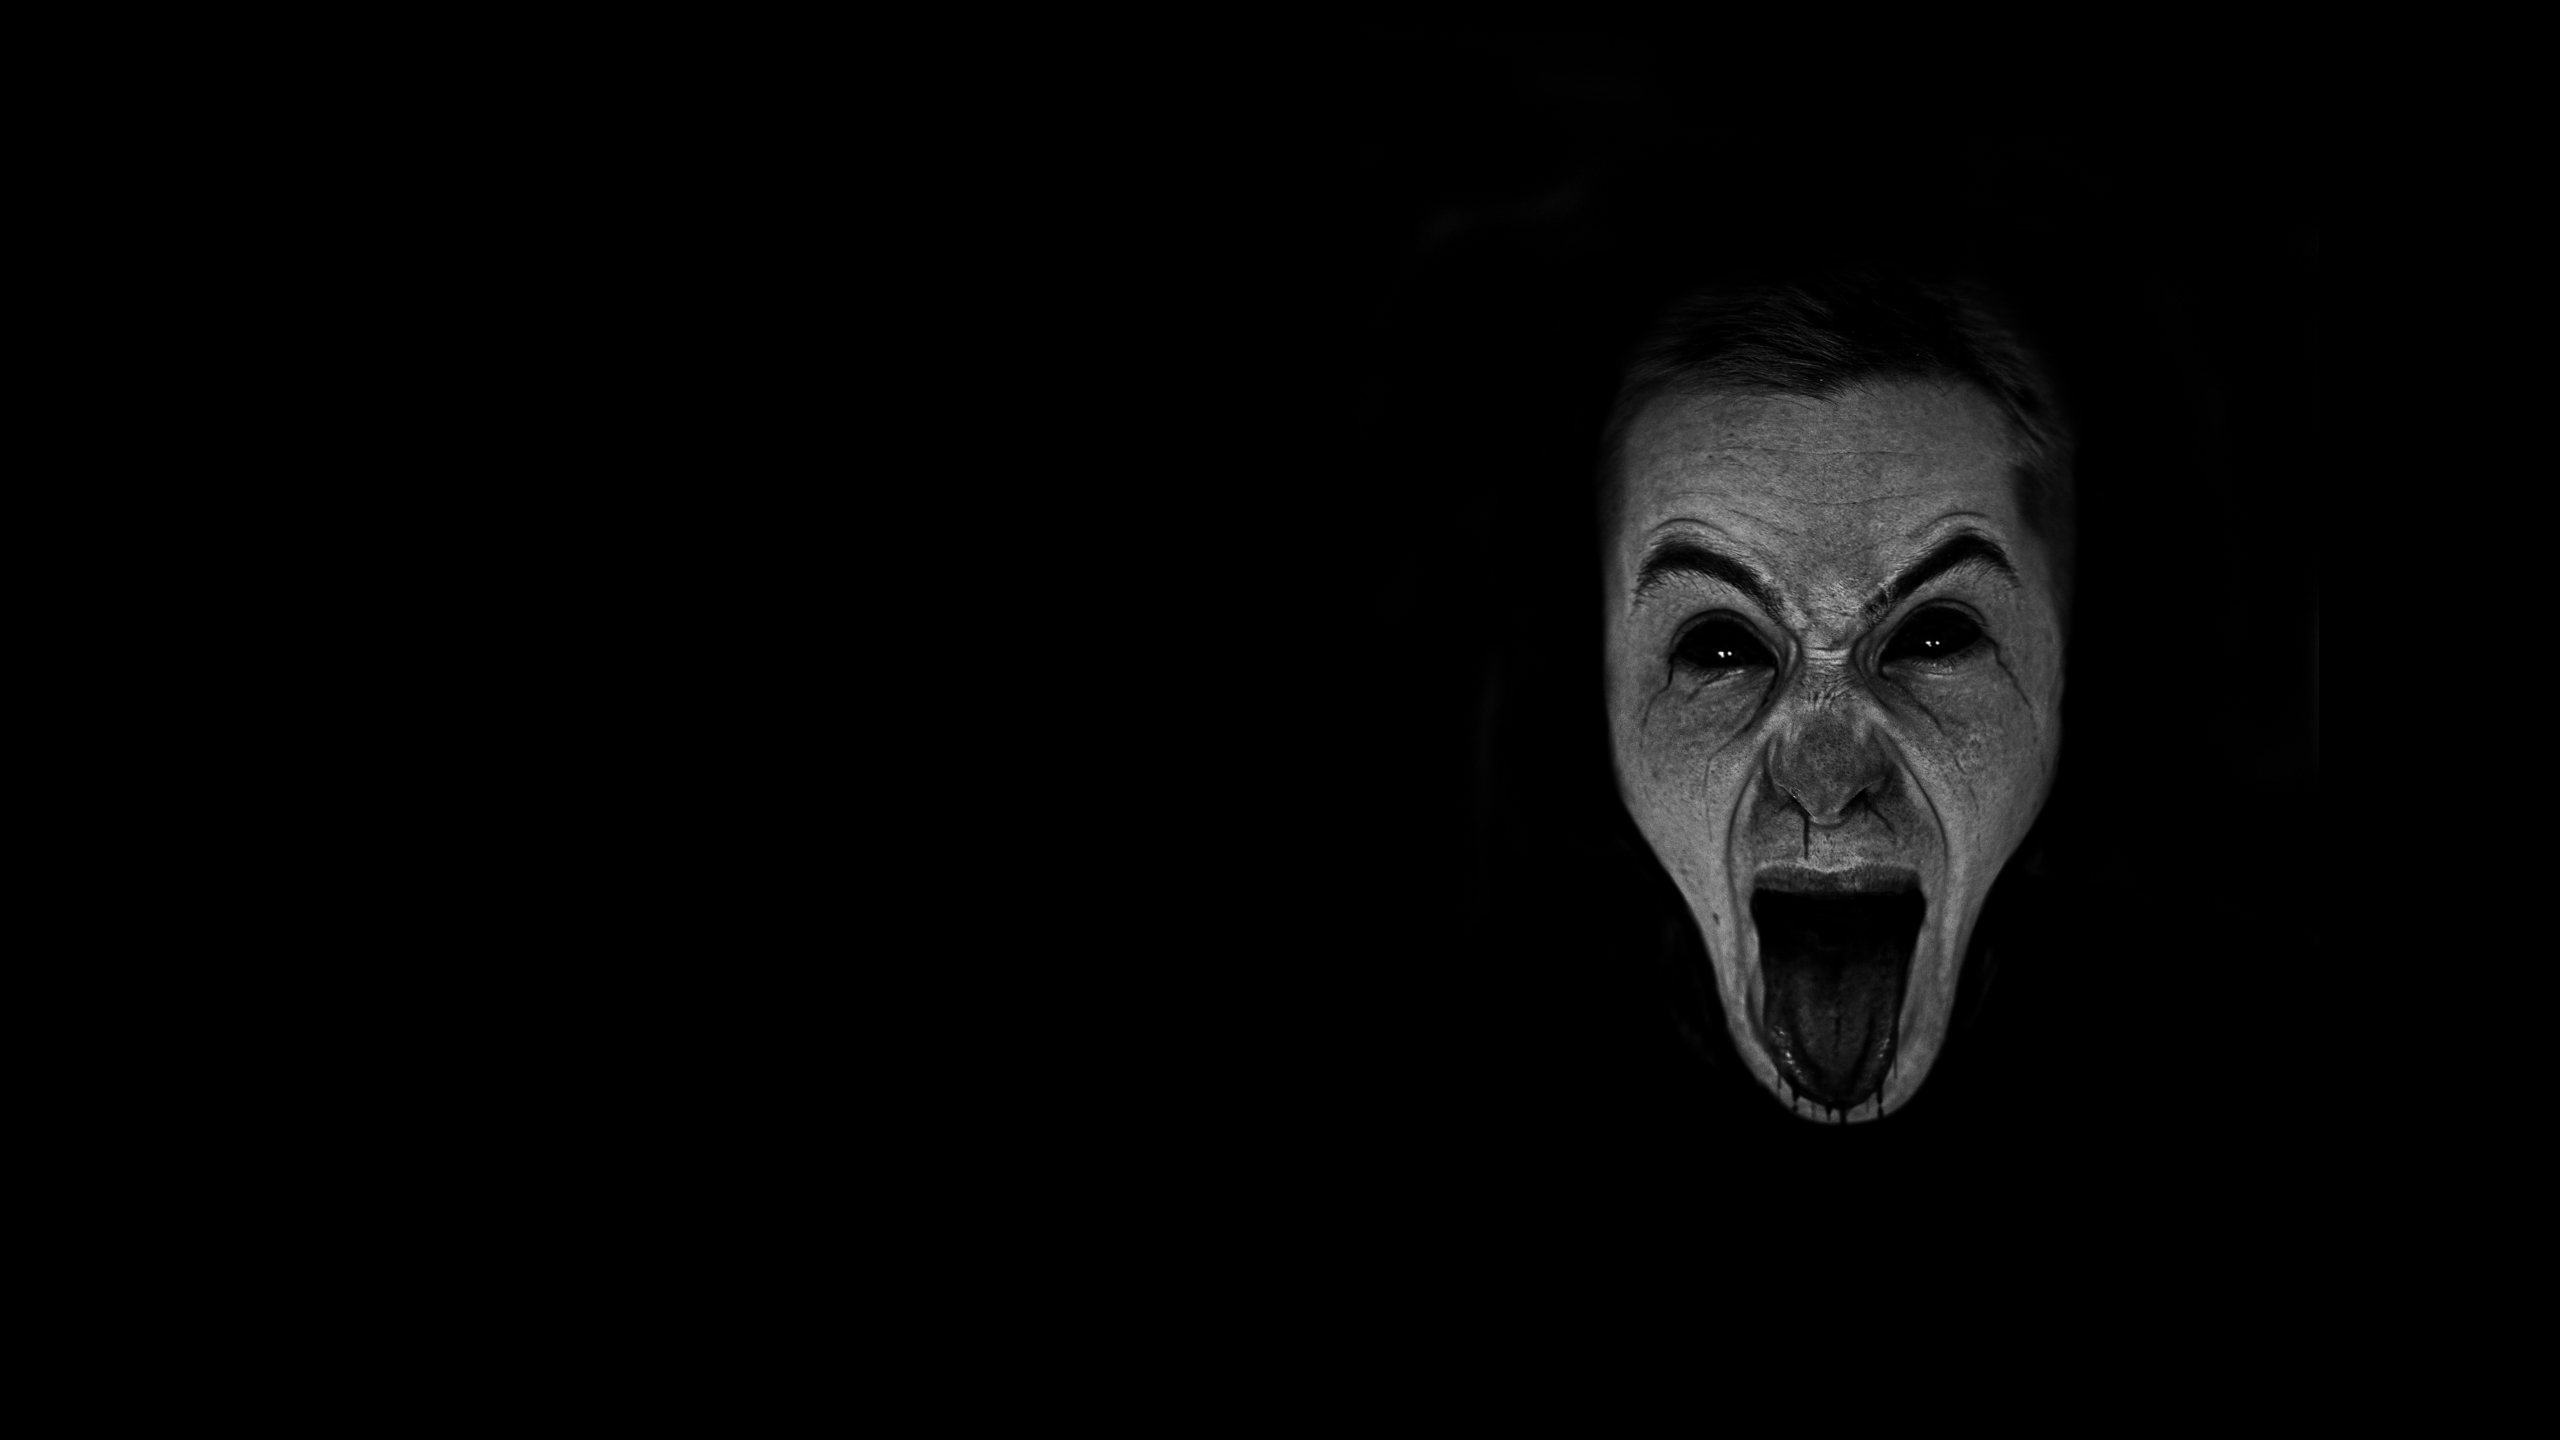 awesome 45 scream wallpapers - photo #21